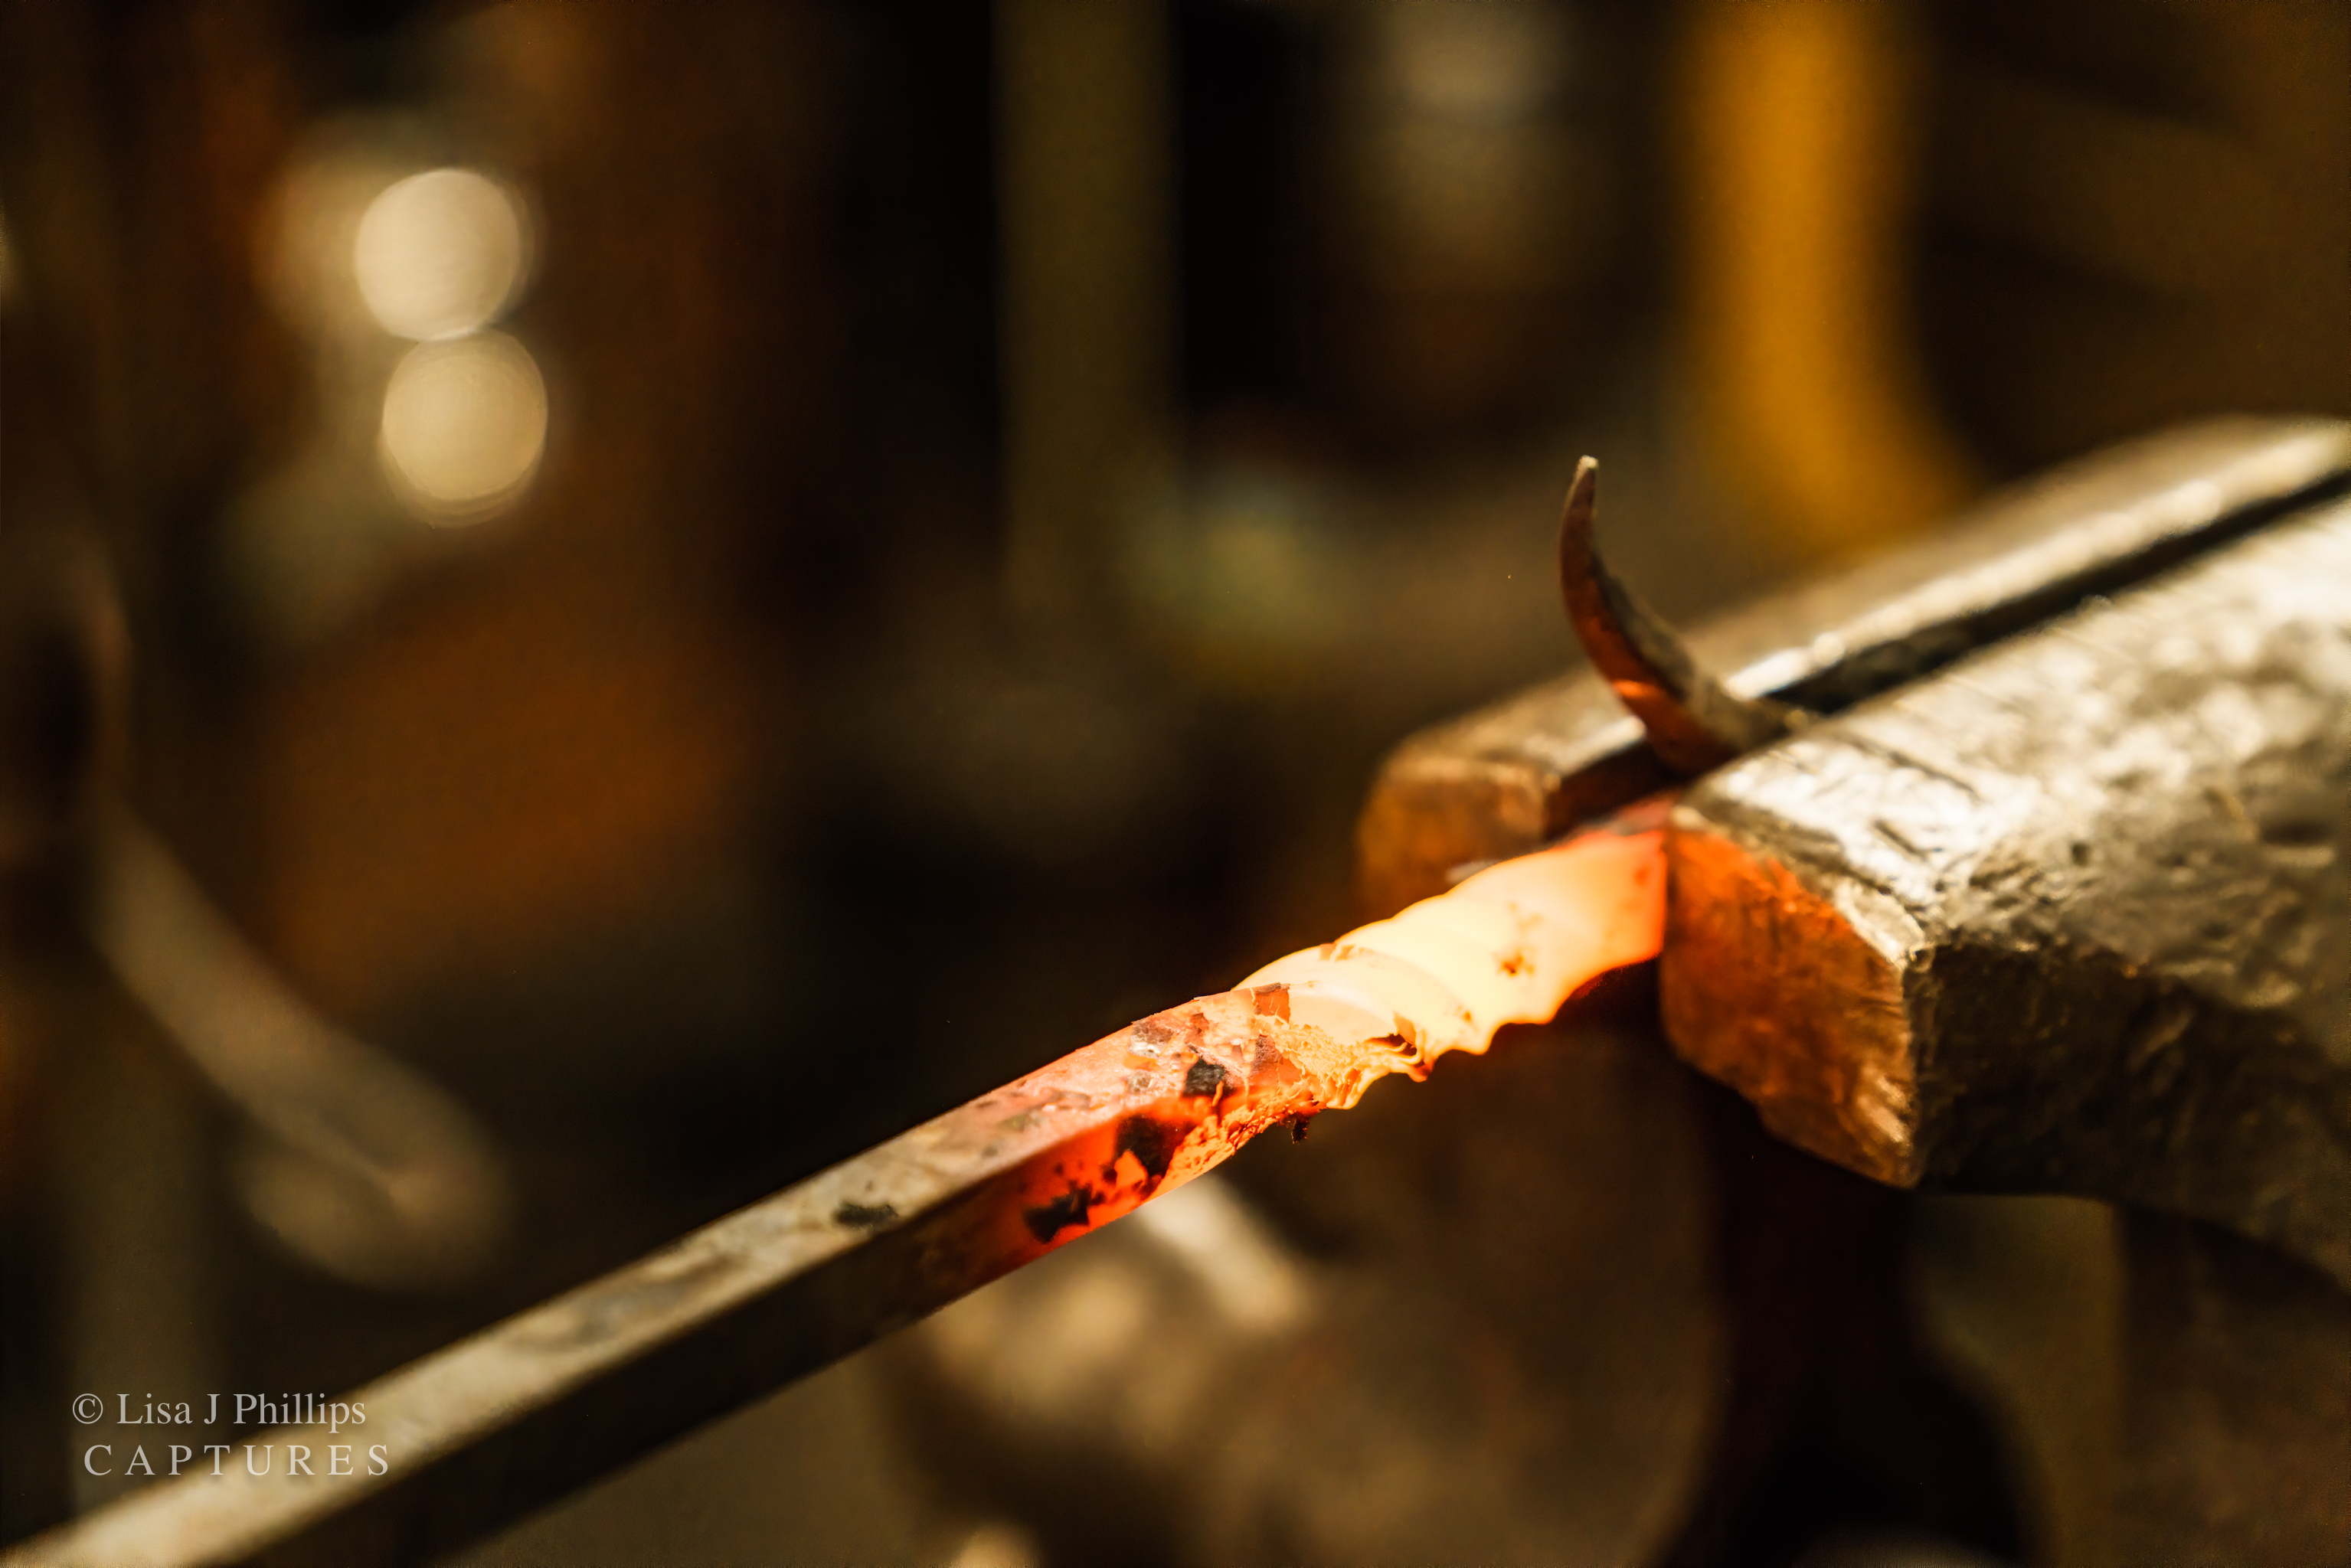 Blacksmiths have many vices